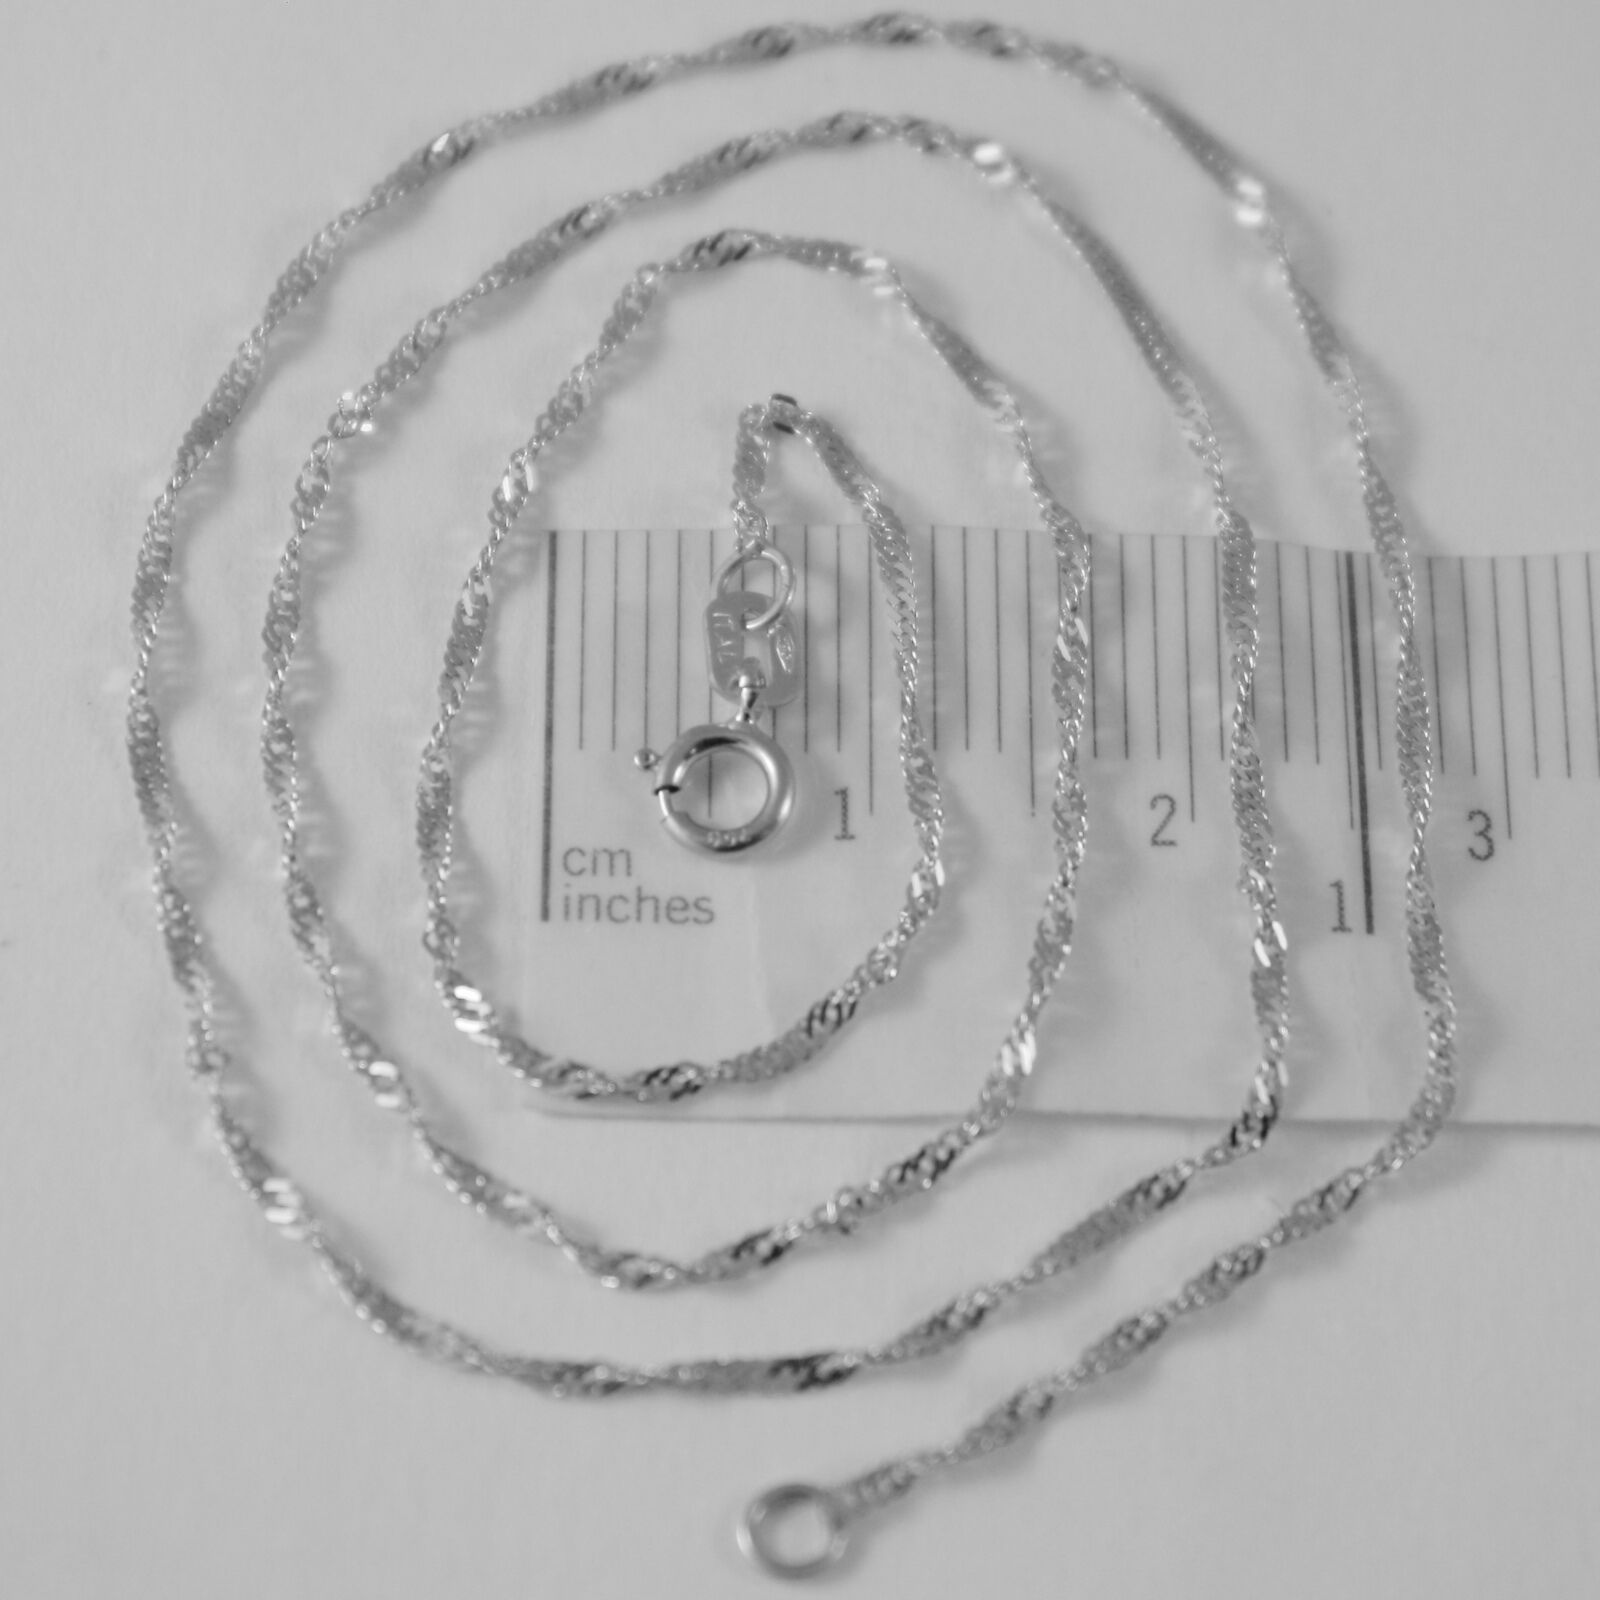 18K WHITE GOLD MINI SINGAPORE BRAID ROPE CHAIN 18 INCHES 1.2 MM MADE IN ITALY